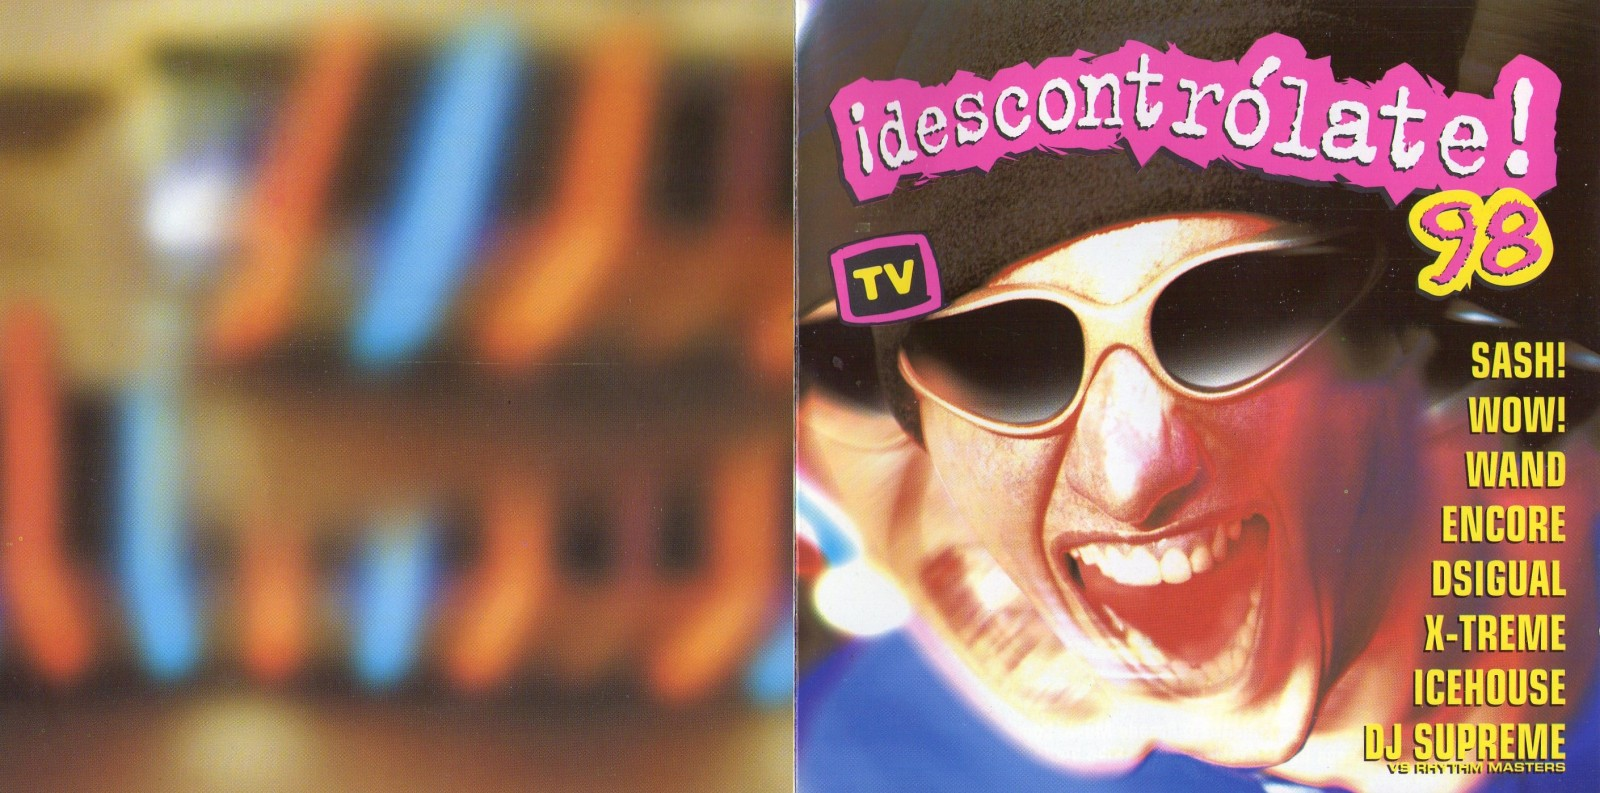 descontrolate 98 (1998) -  2 cds  -  320kbps  - boy records 2el87y0